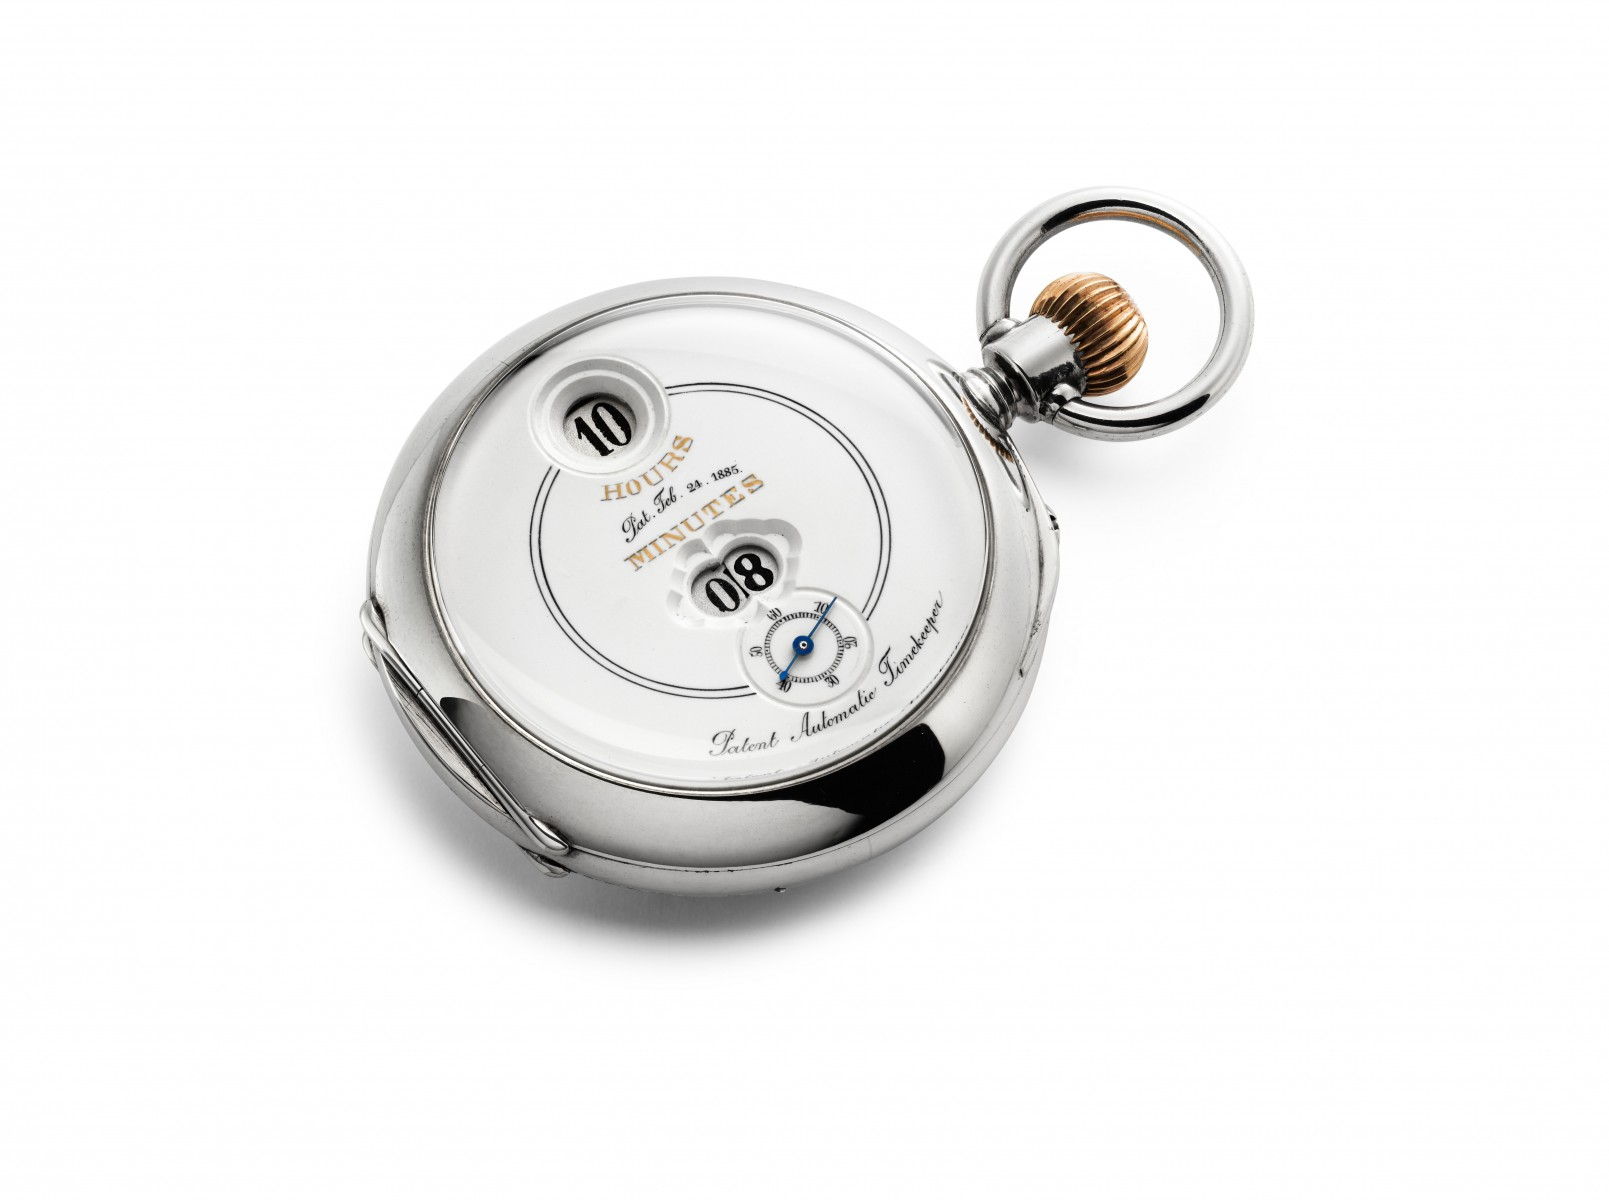 IWC_Savonnette Pocket Watch Pallweber_1886